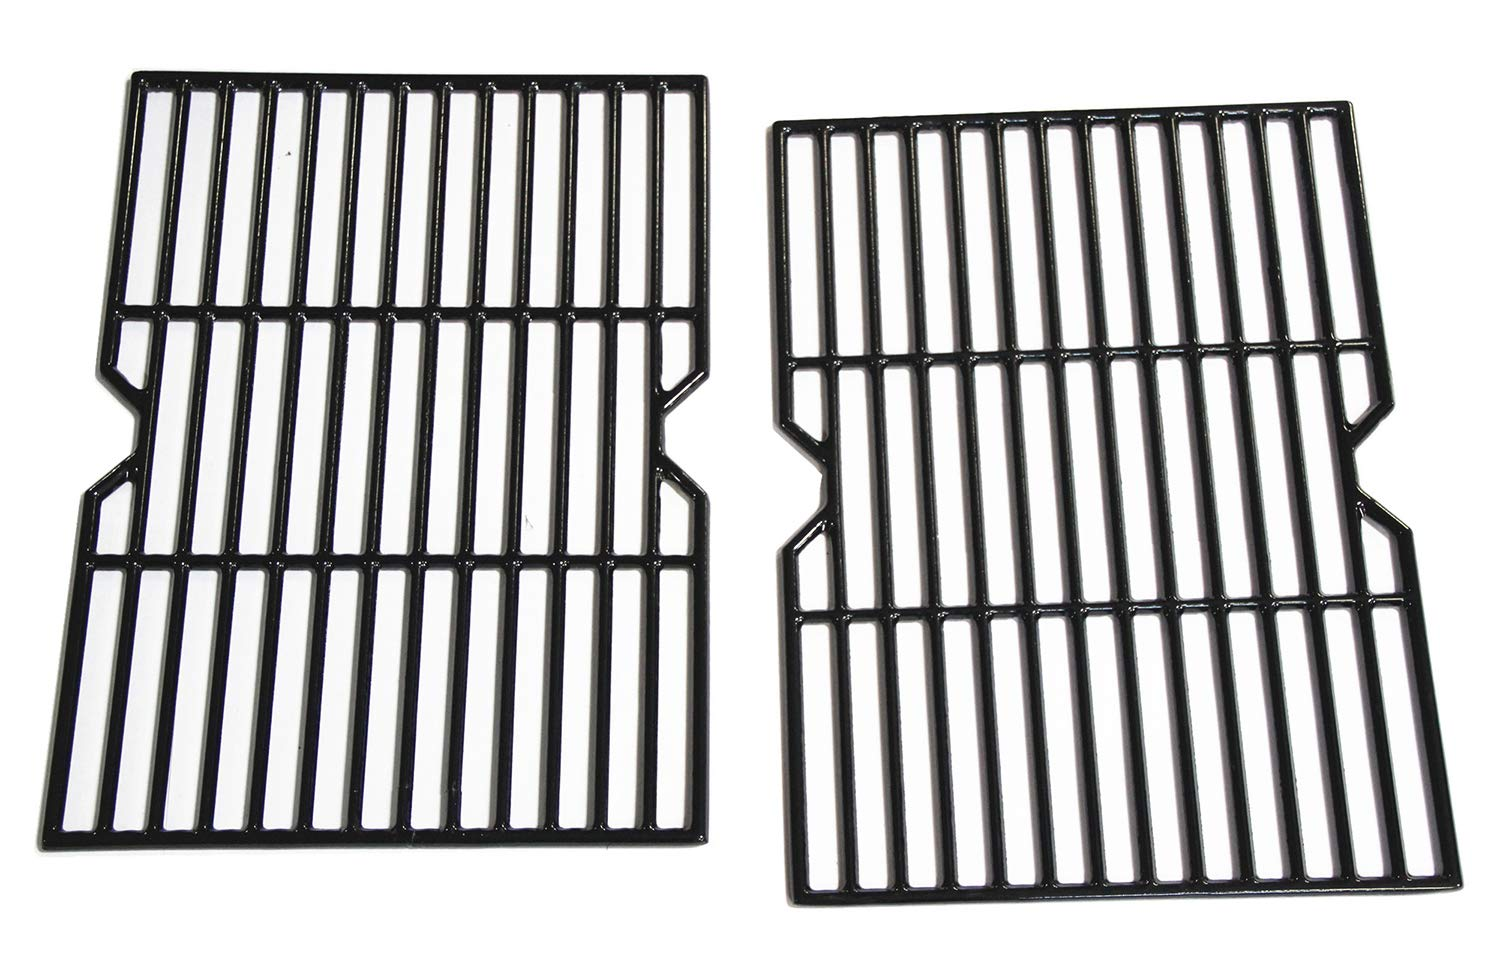 Hongso Porcelain Coated Cast Iron Cooking Grid Grate Replacement Parts for Grill Master 720-0737, Grill Chef, Nexgrill Gas Grill Models, 17 1/8 x 24 7/8 inches BBQ Grill Grates, Set of 2 (PCF162) by Hongso